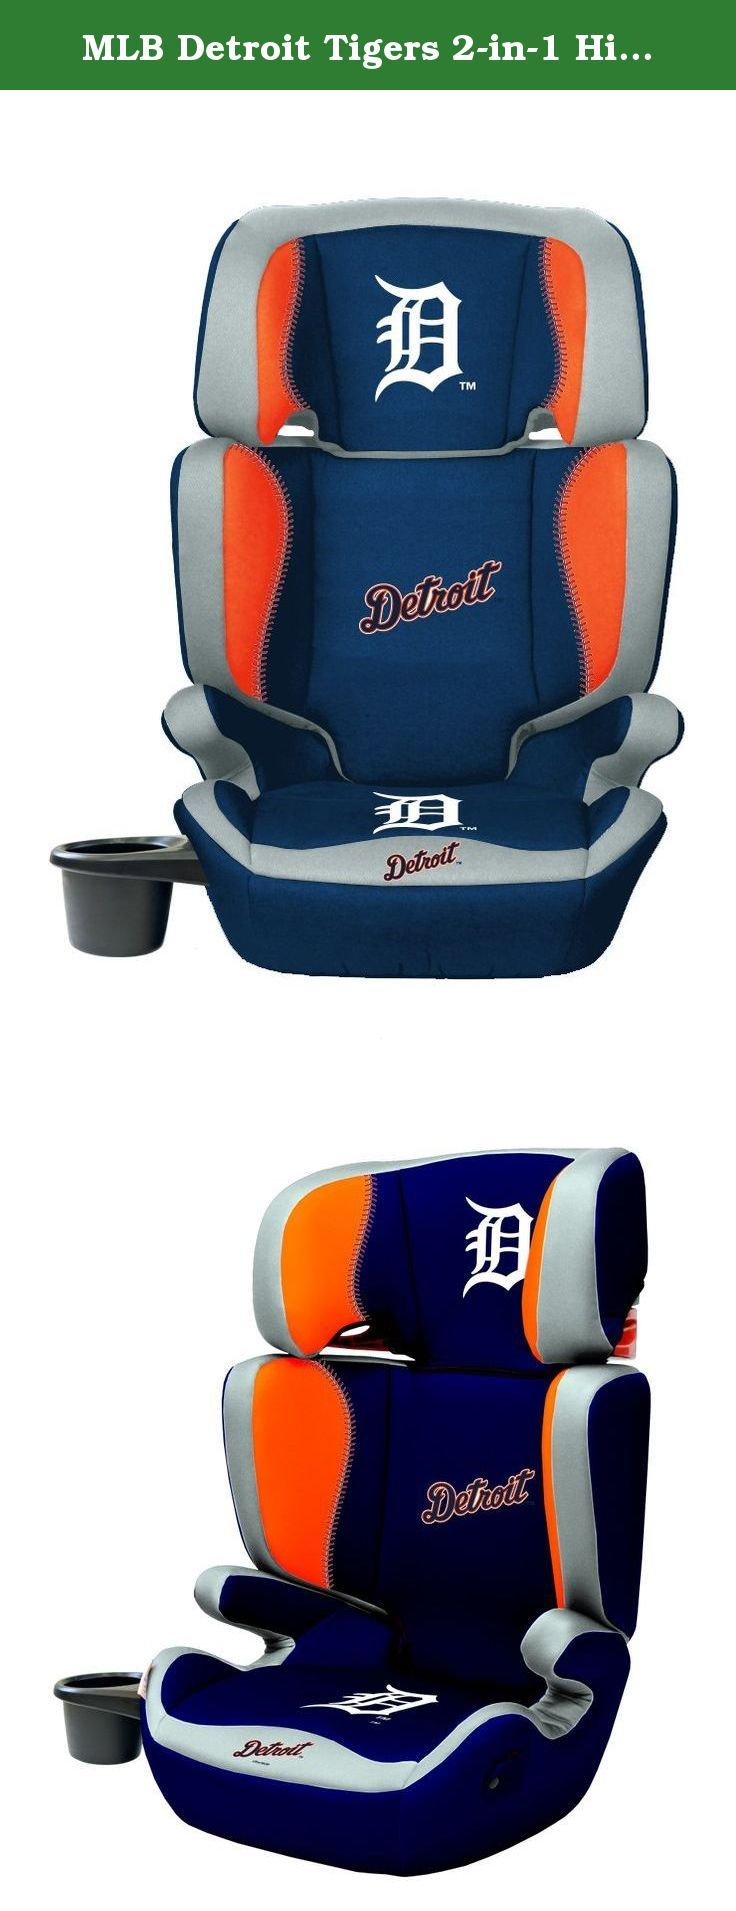 MLB Detroit Tigers 2-in-1 High Back Booster Seat, 30 - 100-Pound, Multi. Let your child ride in style with this officially licensed 2-in-1 high back Booster seat. Safety rated for 30-100 pounds the headrest grows along with your child. The seat meets or exceeds all Federal safety regulations and has a large and wide cushion to offer maximum comfort. The team colored seat cover is easily removable and washable. The backrest is easily removed to create a no-back Booster seat. For Lil fans…